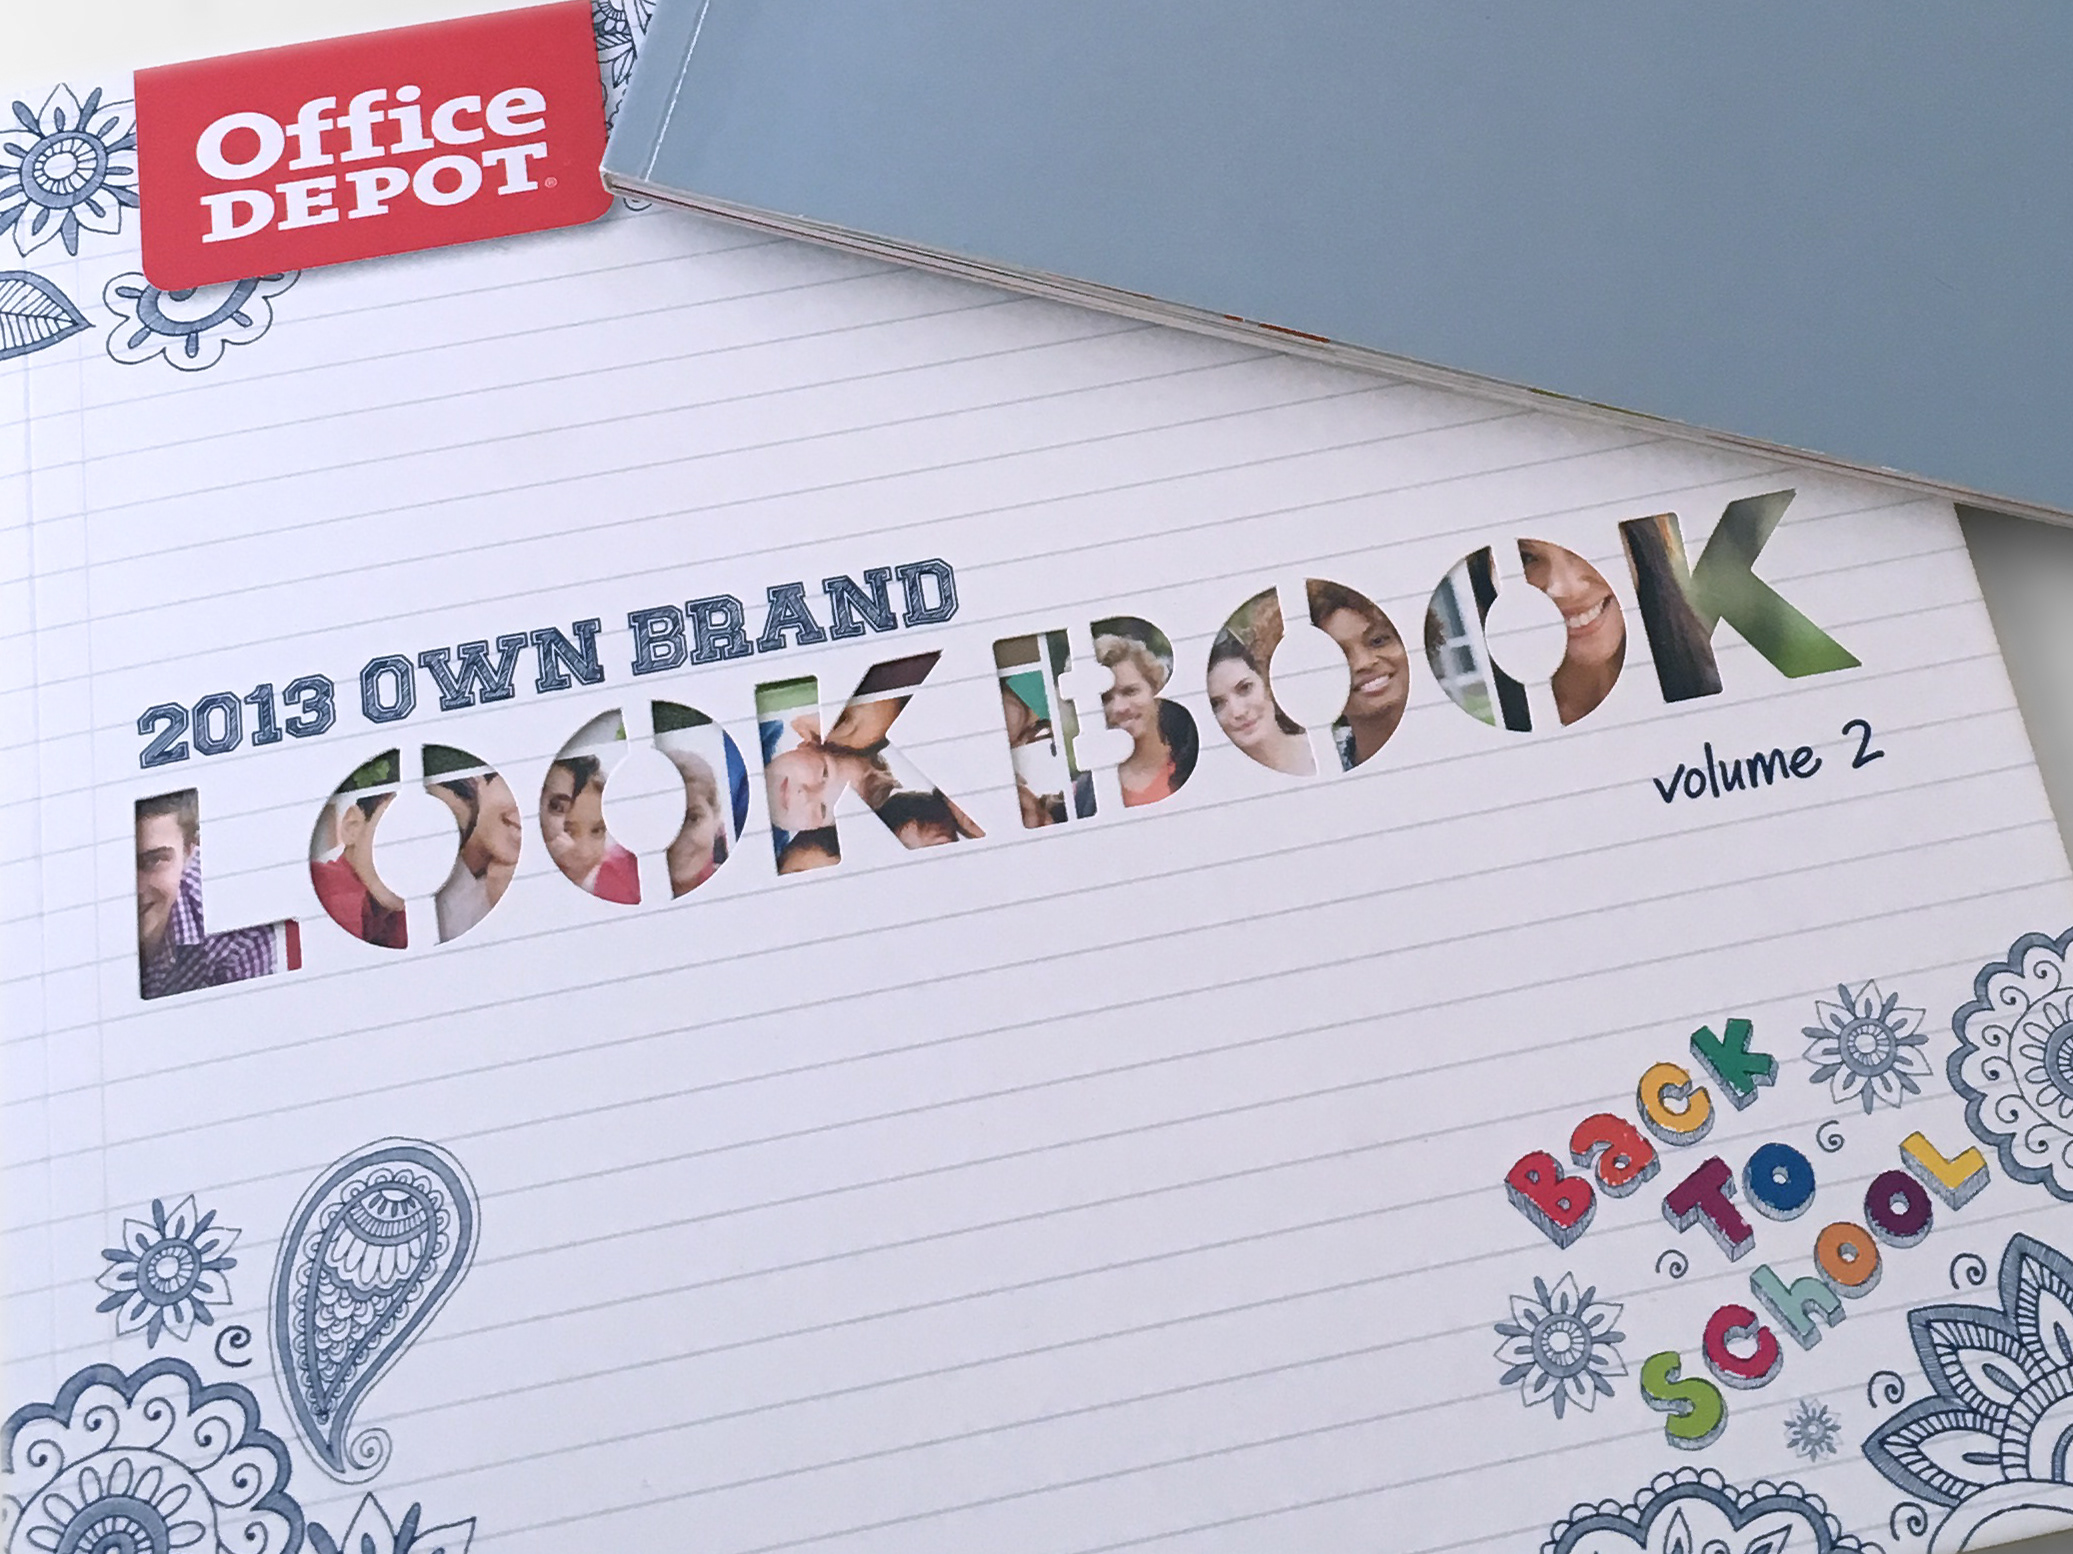 Mary Sarlo Carmichael Office Depot Lookbook Redesign